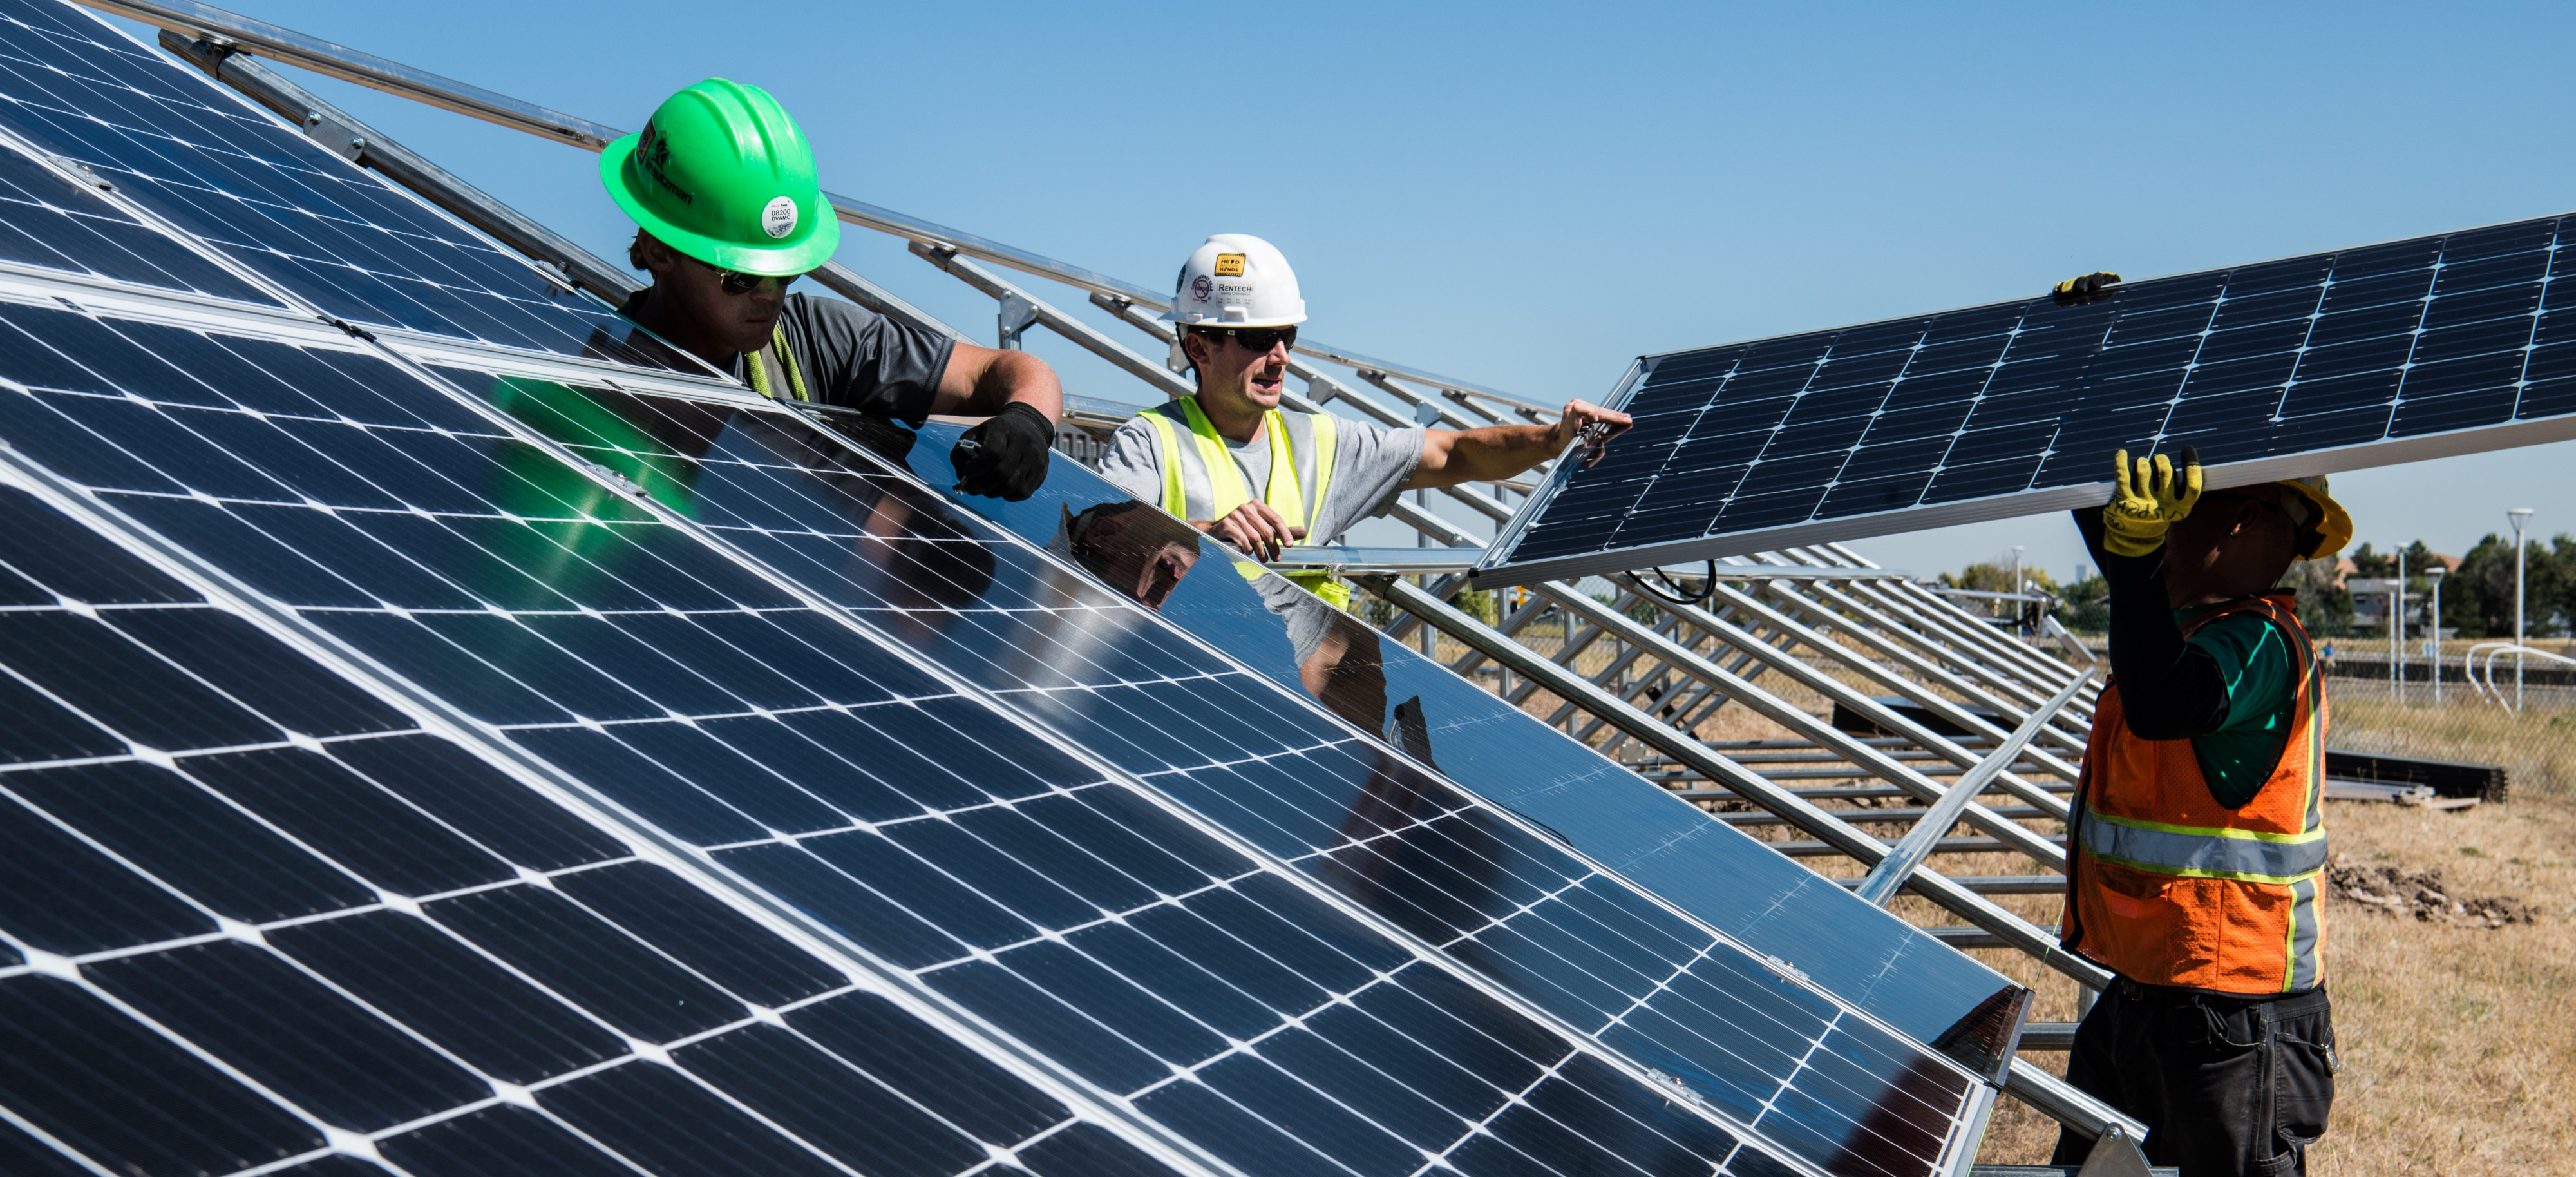 Top 5 Solar Energy Breakthroughs Of 2020 By Pace Lavia Datadriveninvestor